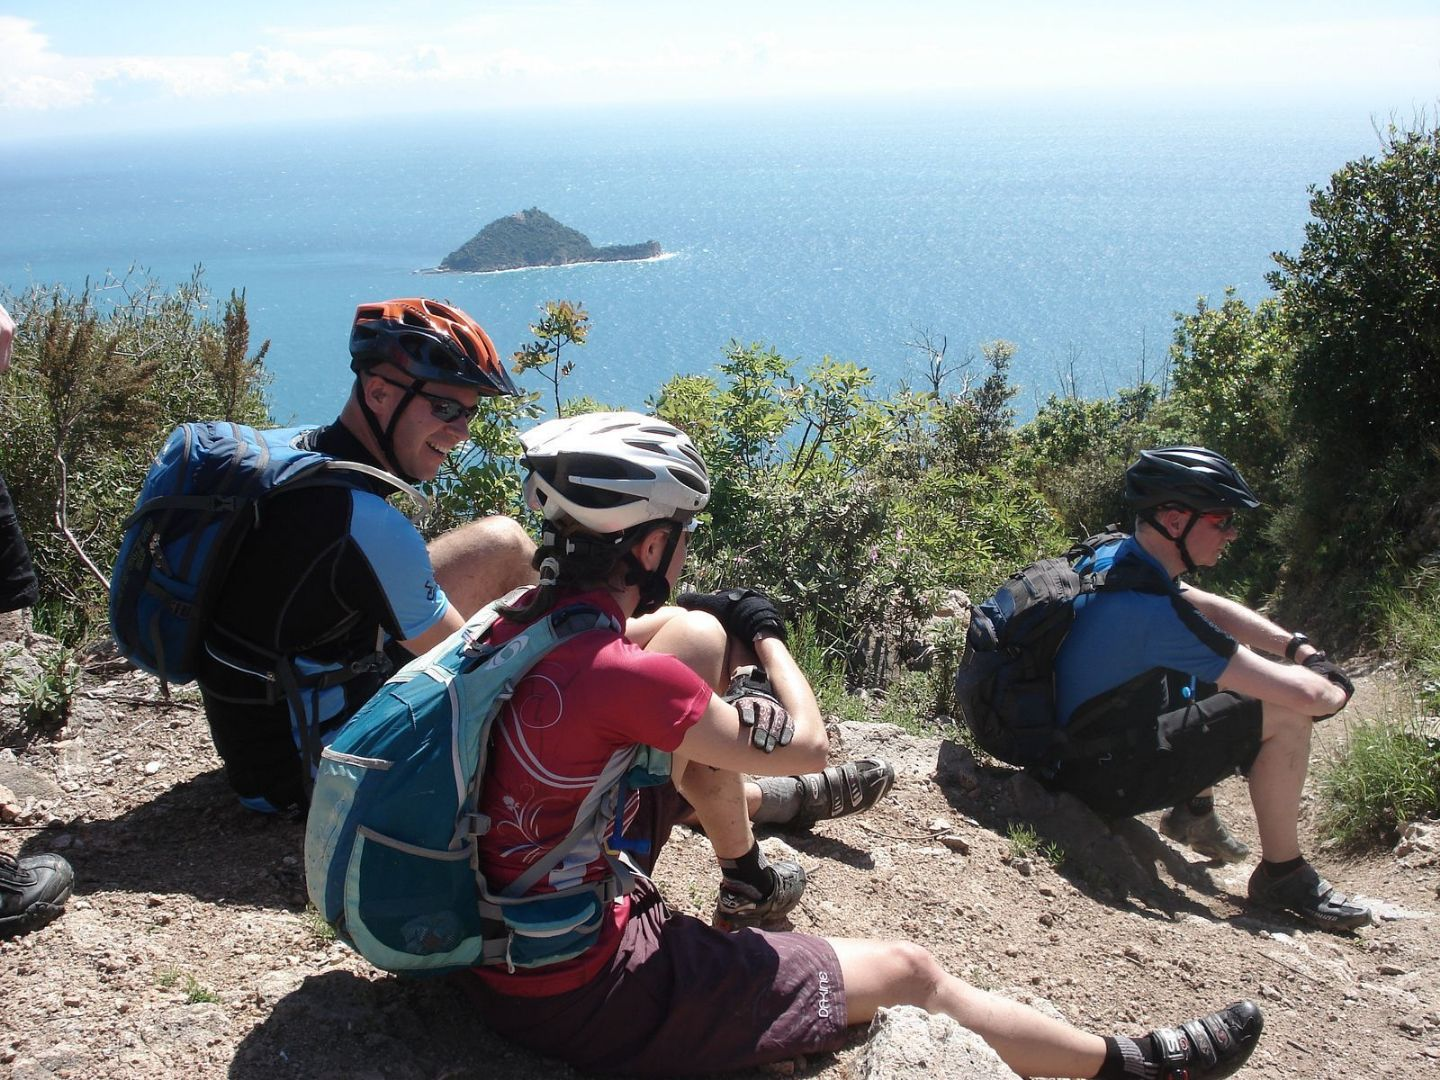 8864877277_94e2353ff3_h.jpg - Italy - Liguria - Riding the Riviera - Guided Mountain Bike Holiday - Italia Mountain Biking